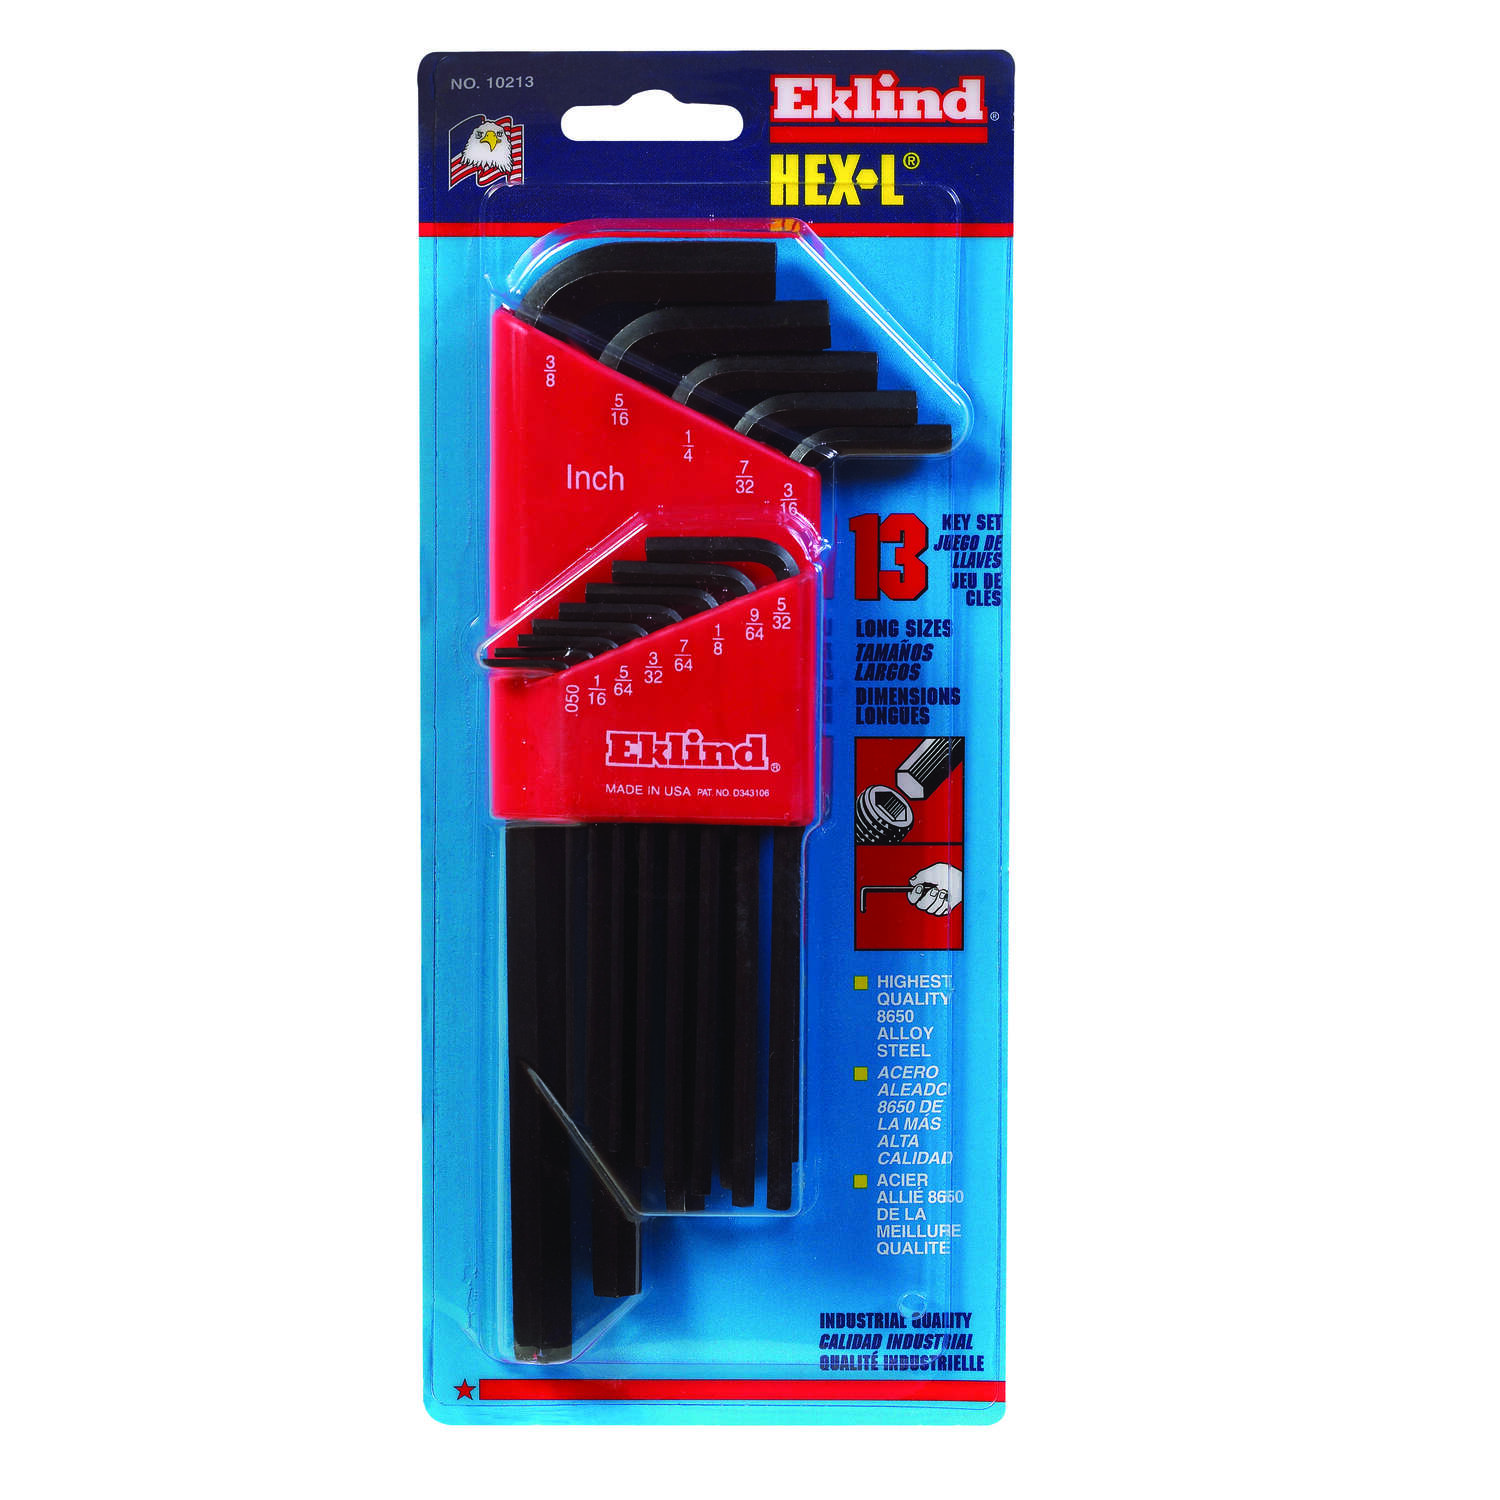 Eklind Tool Hex-L .050 to 3/8 SAE Long Arm Hex L-Key Set Multi-Size in. 13 pc.